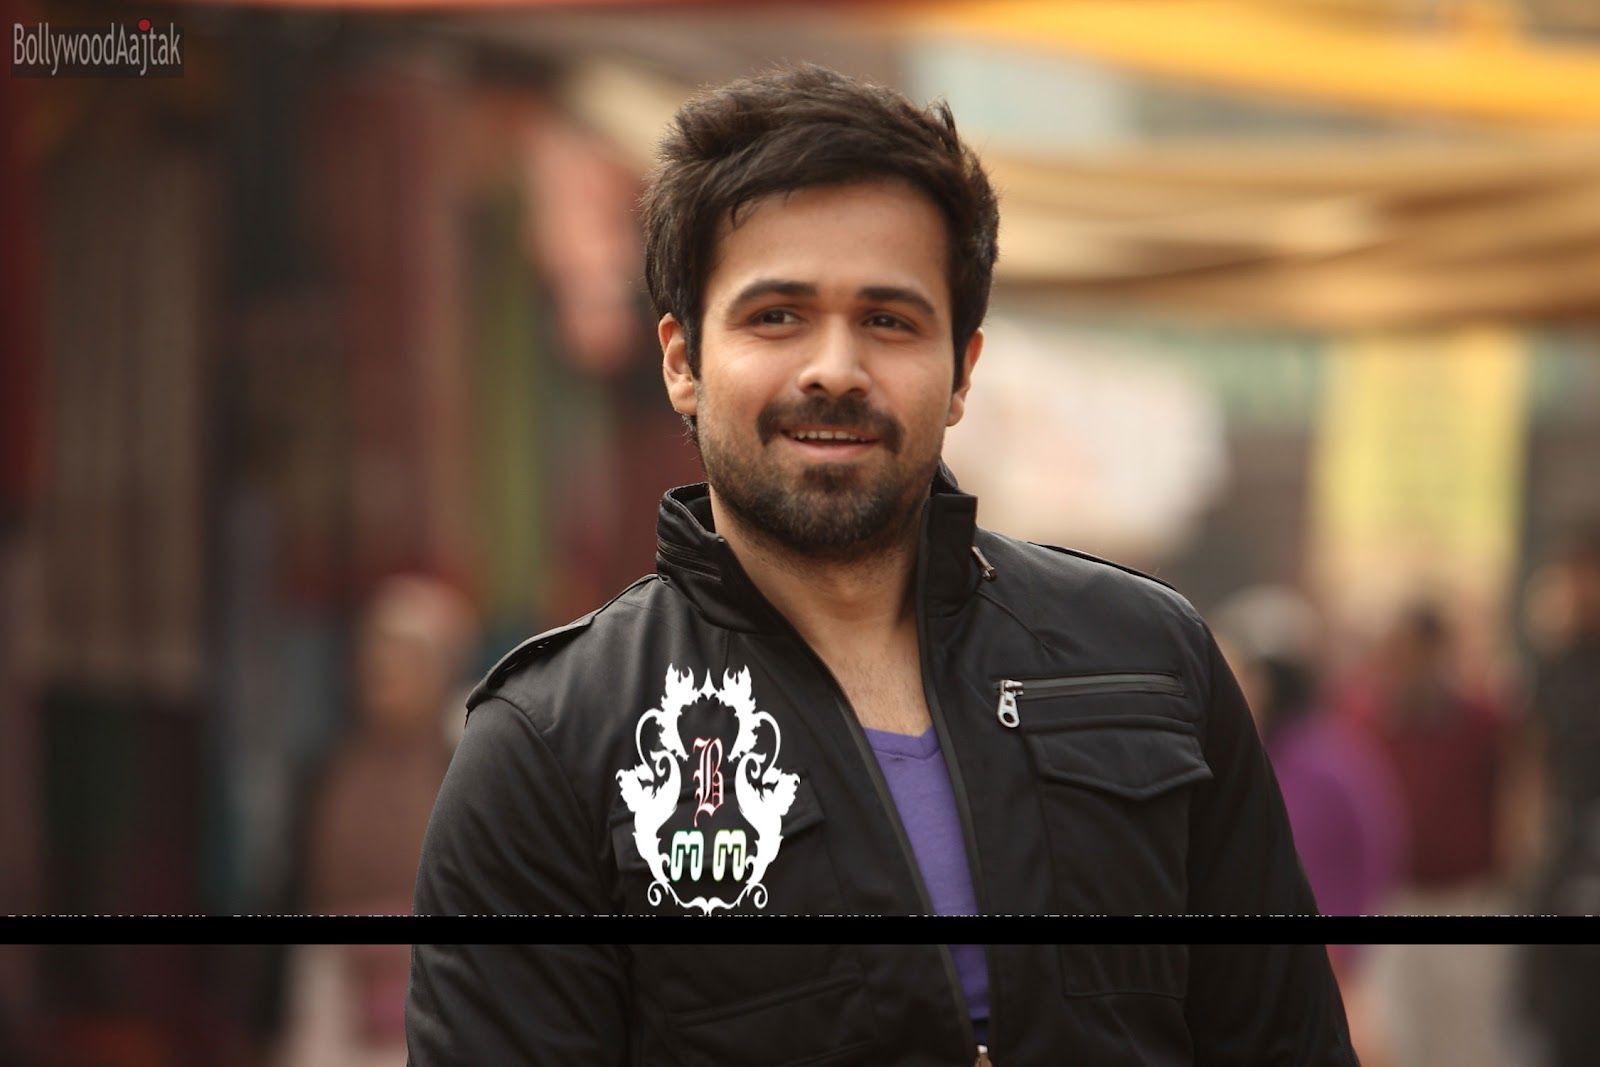 http://1.bp.blogspot.com/-Sj6X1oMw1_A/T5prfeyDcmI/AAAAAAAAADc/TCJ1F7q8w4c/s1600/Movie-Jannat-2-wallpapers-3.jpg